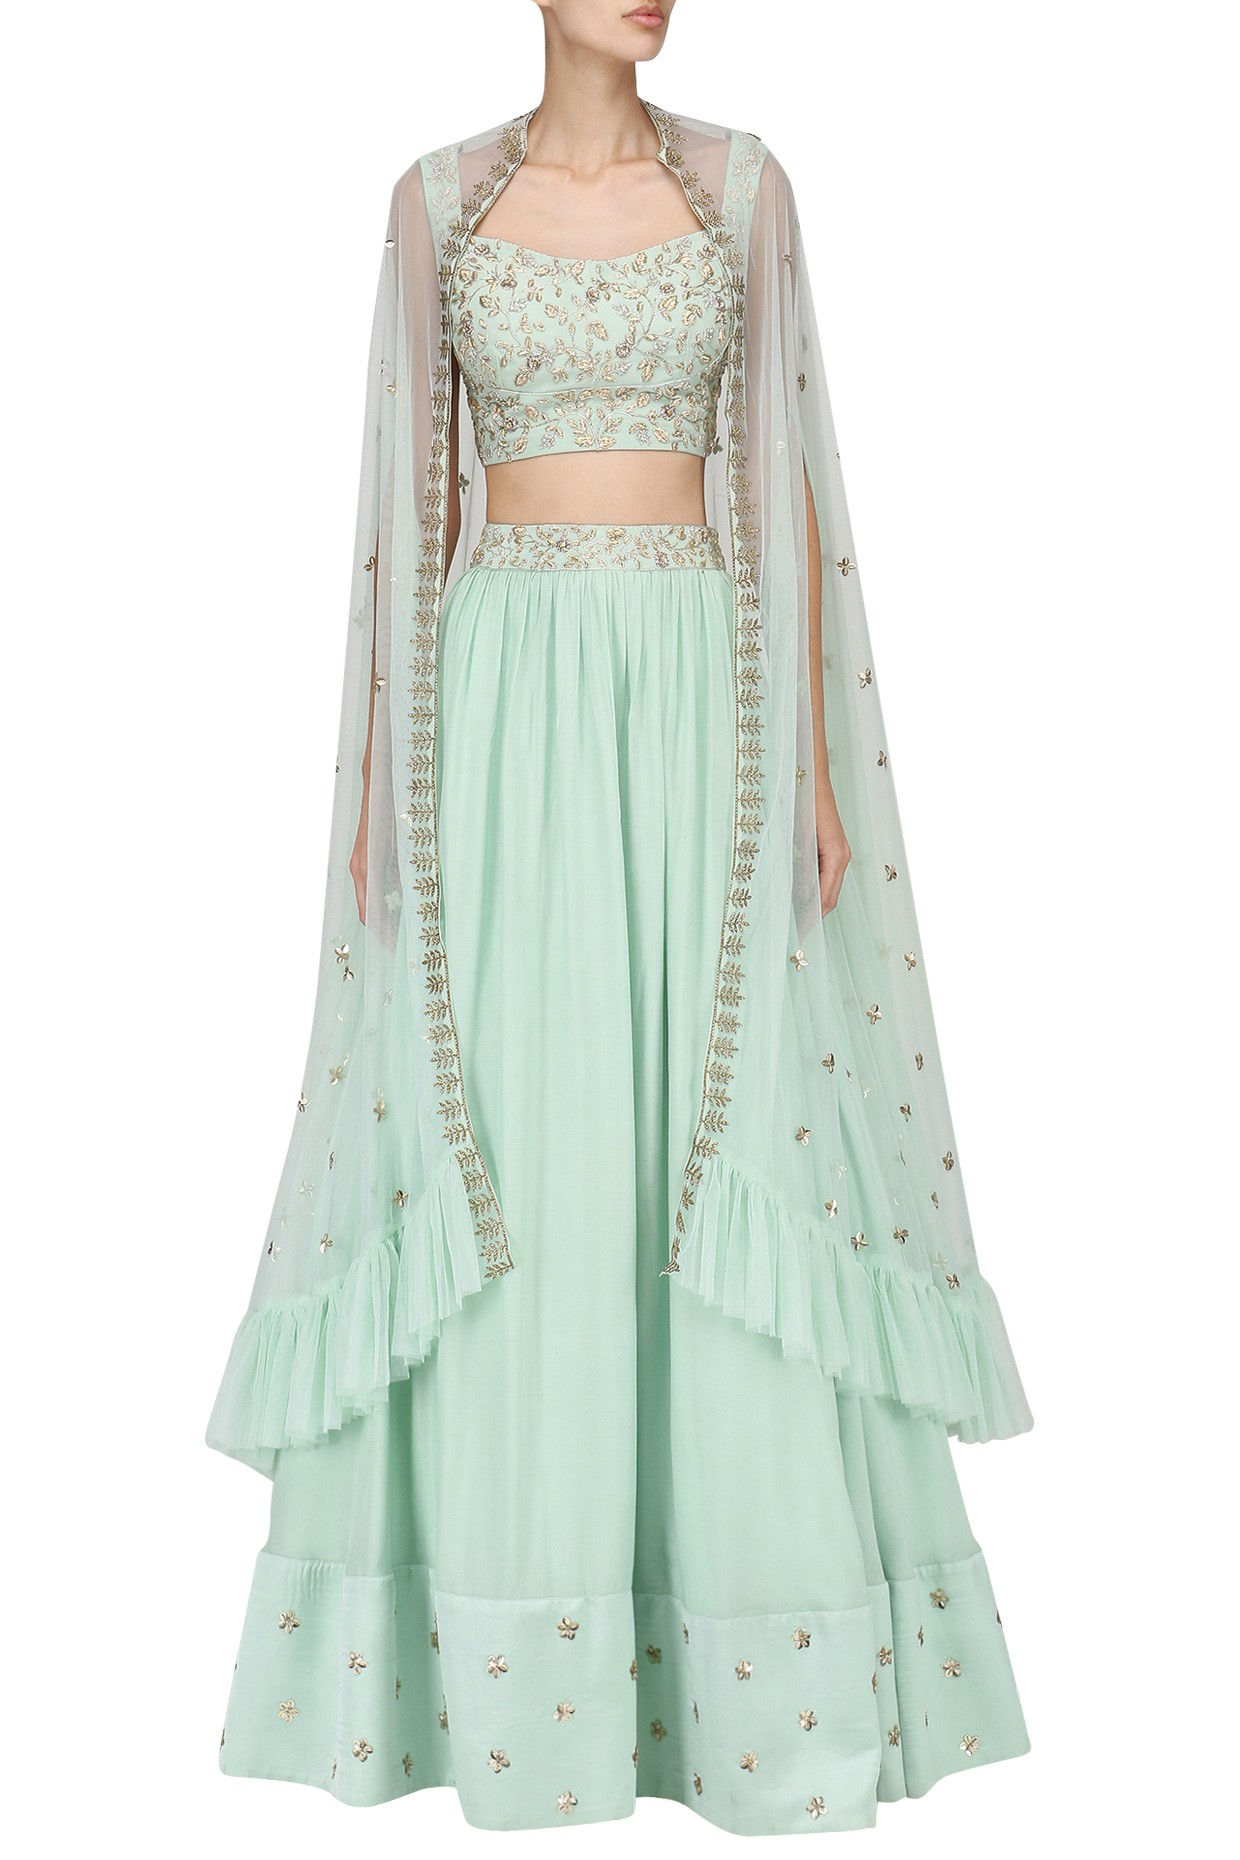 Pista Green Embroidered Lehenga